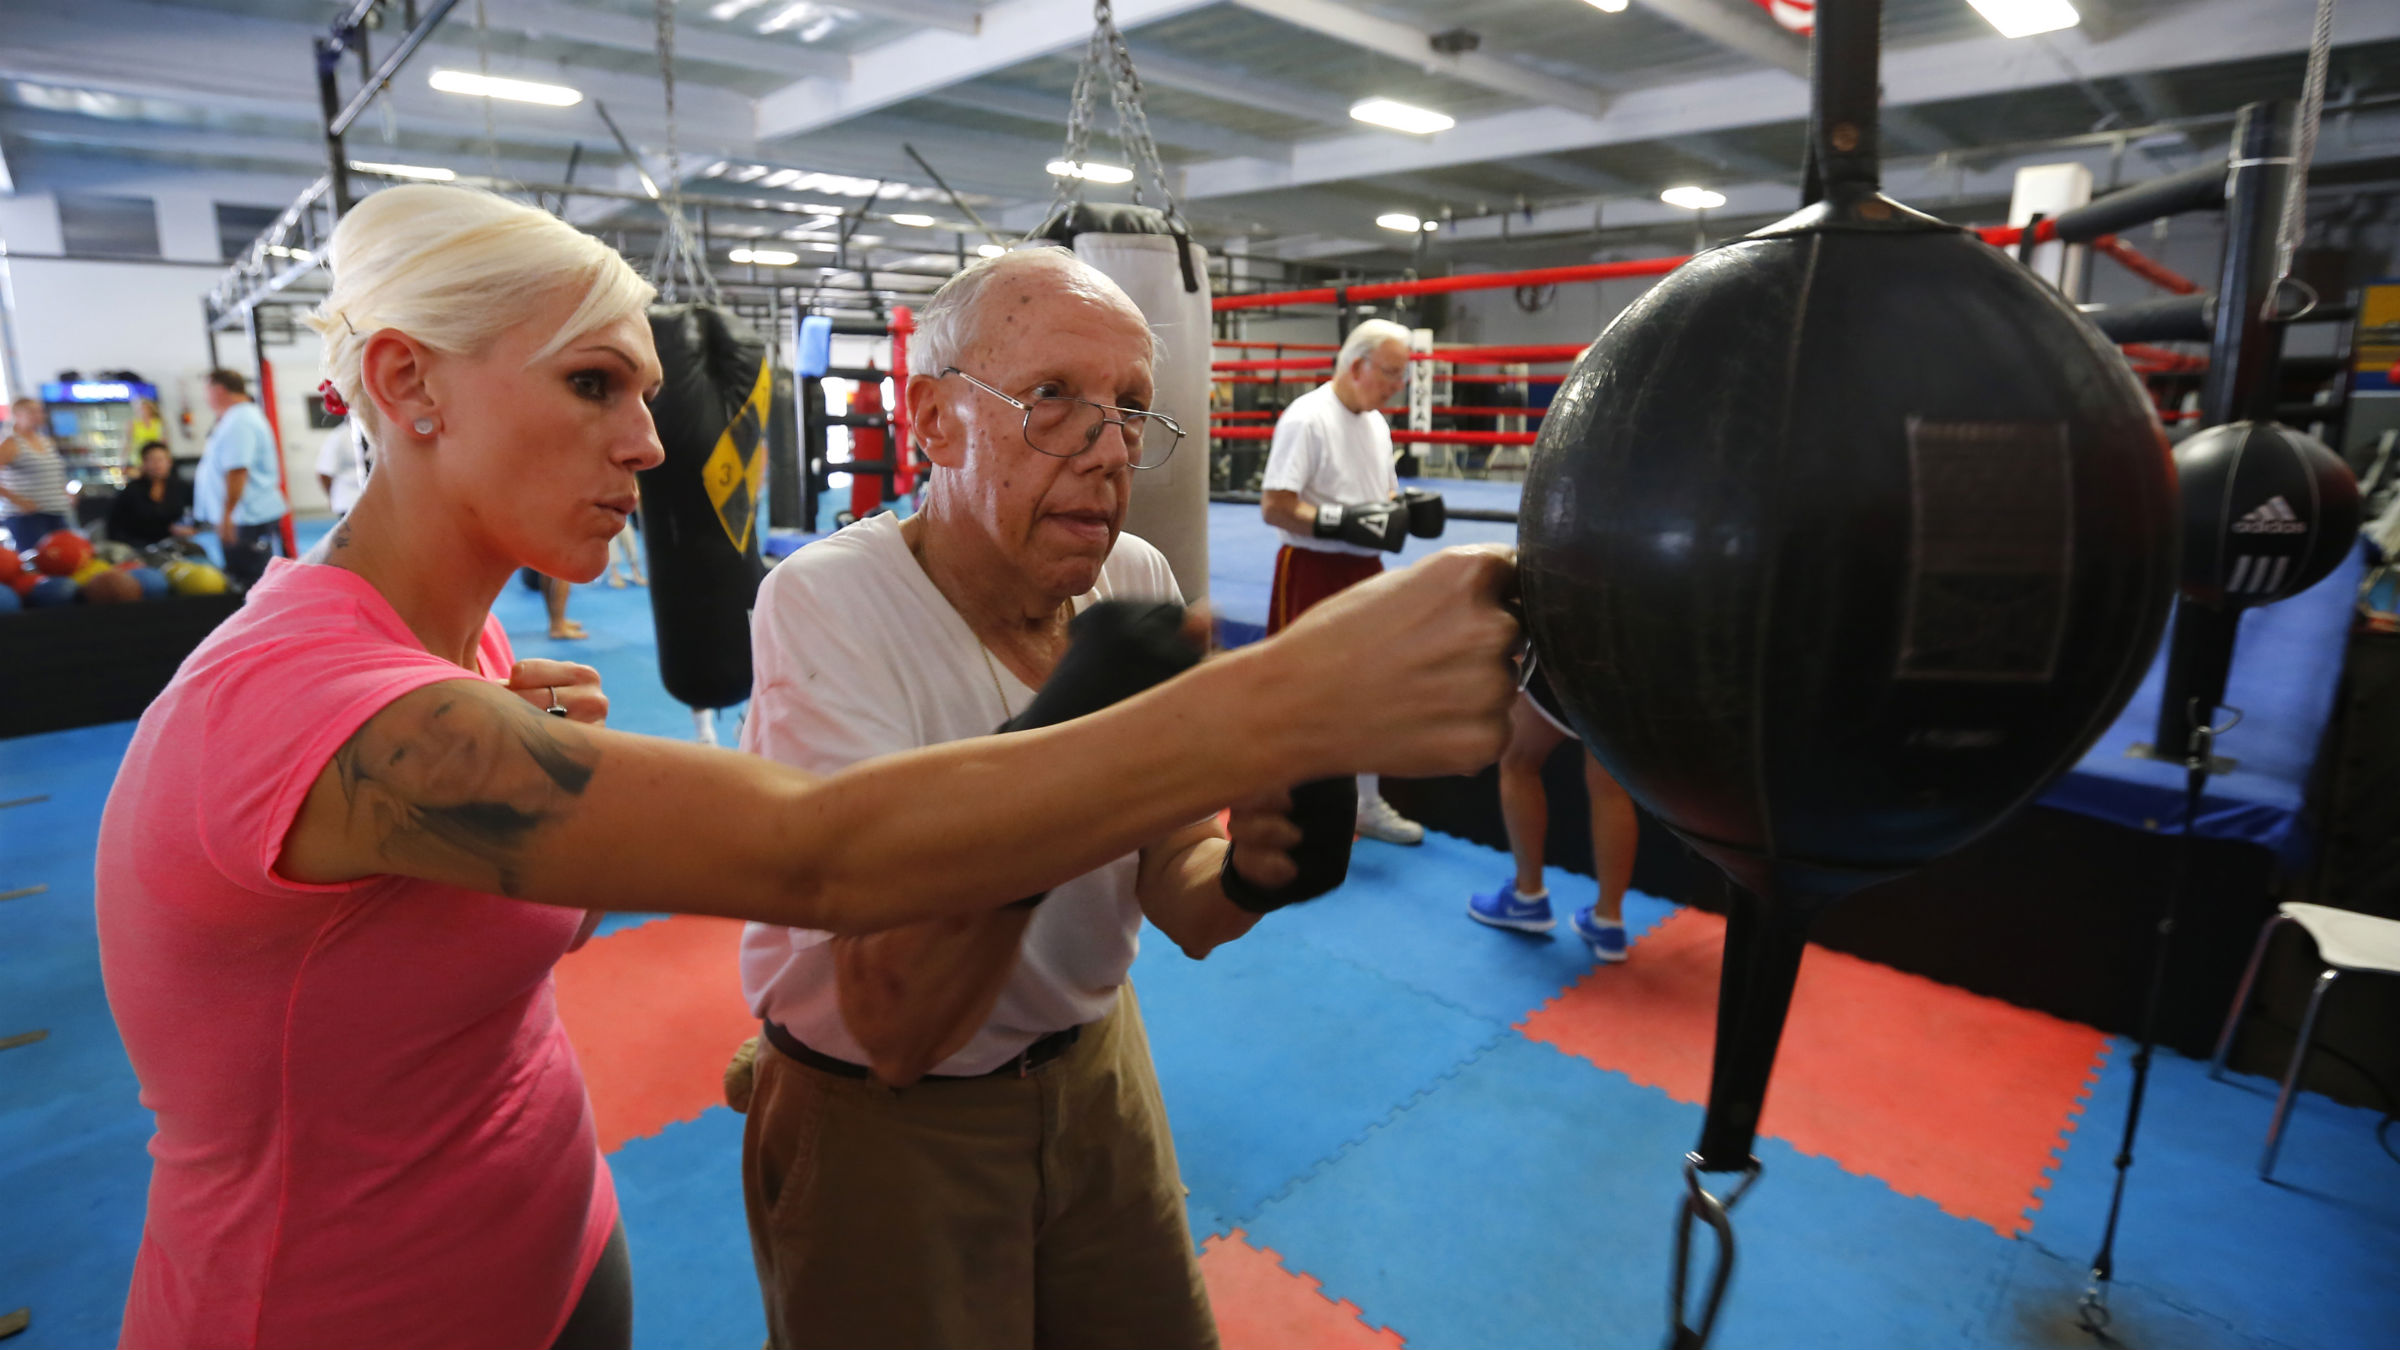 An old man takes a boxing lesson